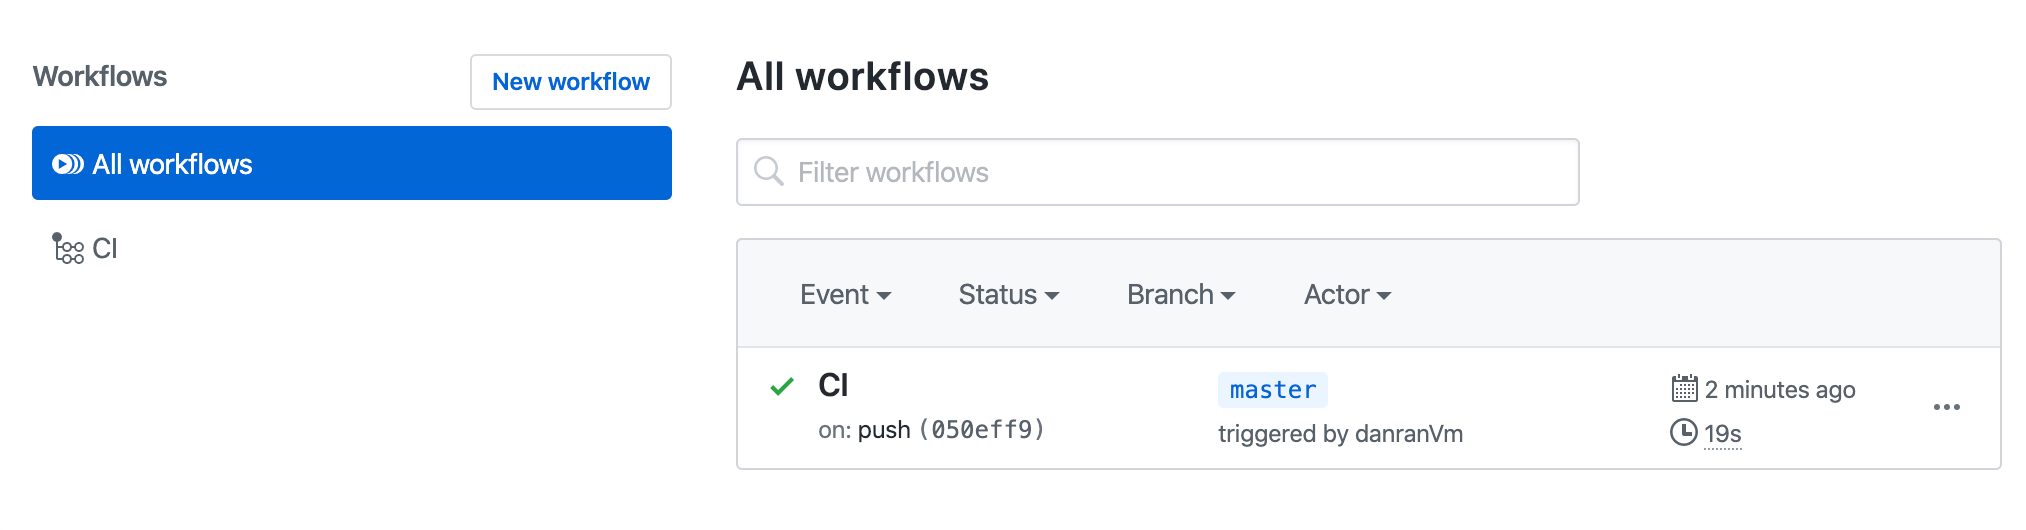 All workflows